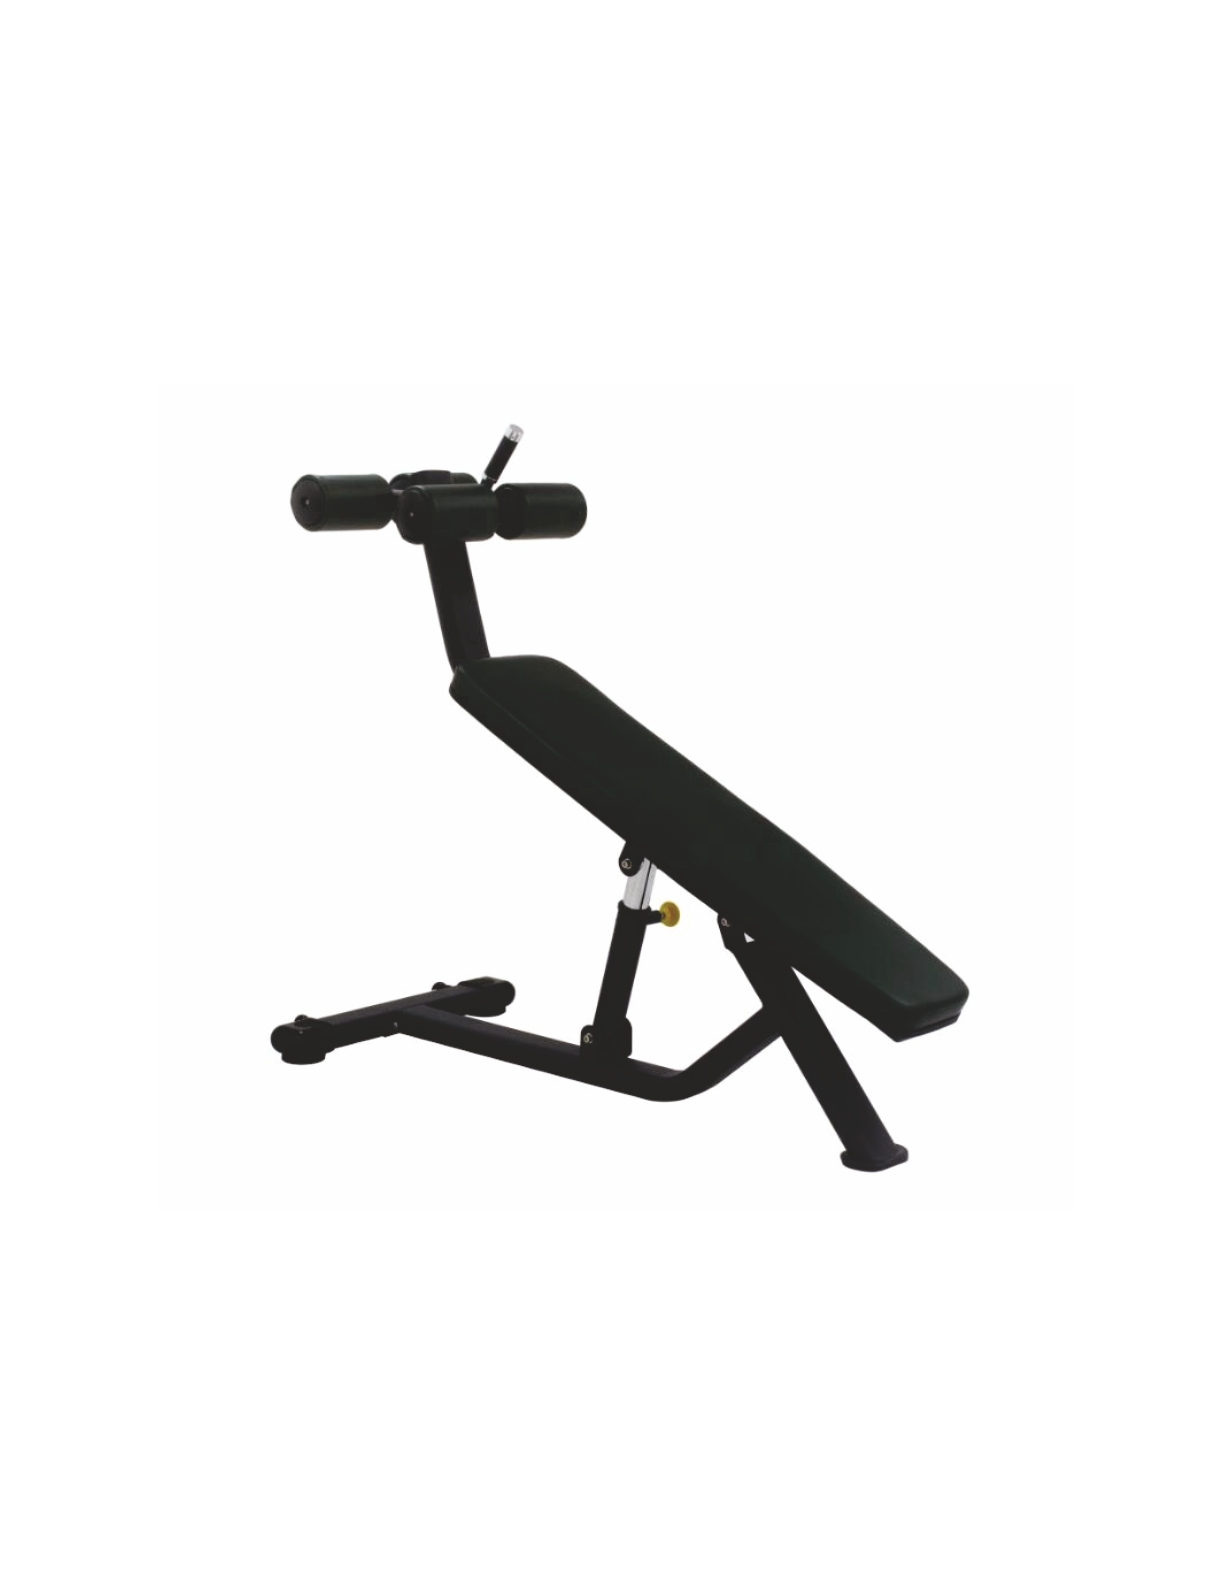 WT3056 ADJUSTABLE ABDOMINAL BOARD